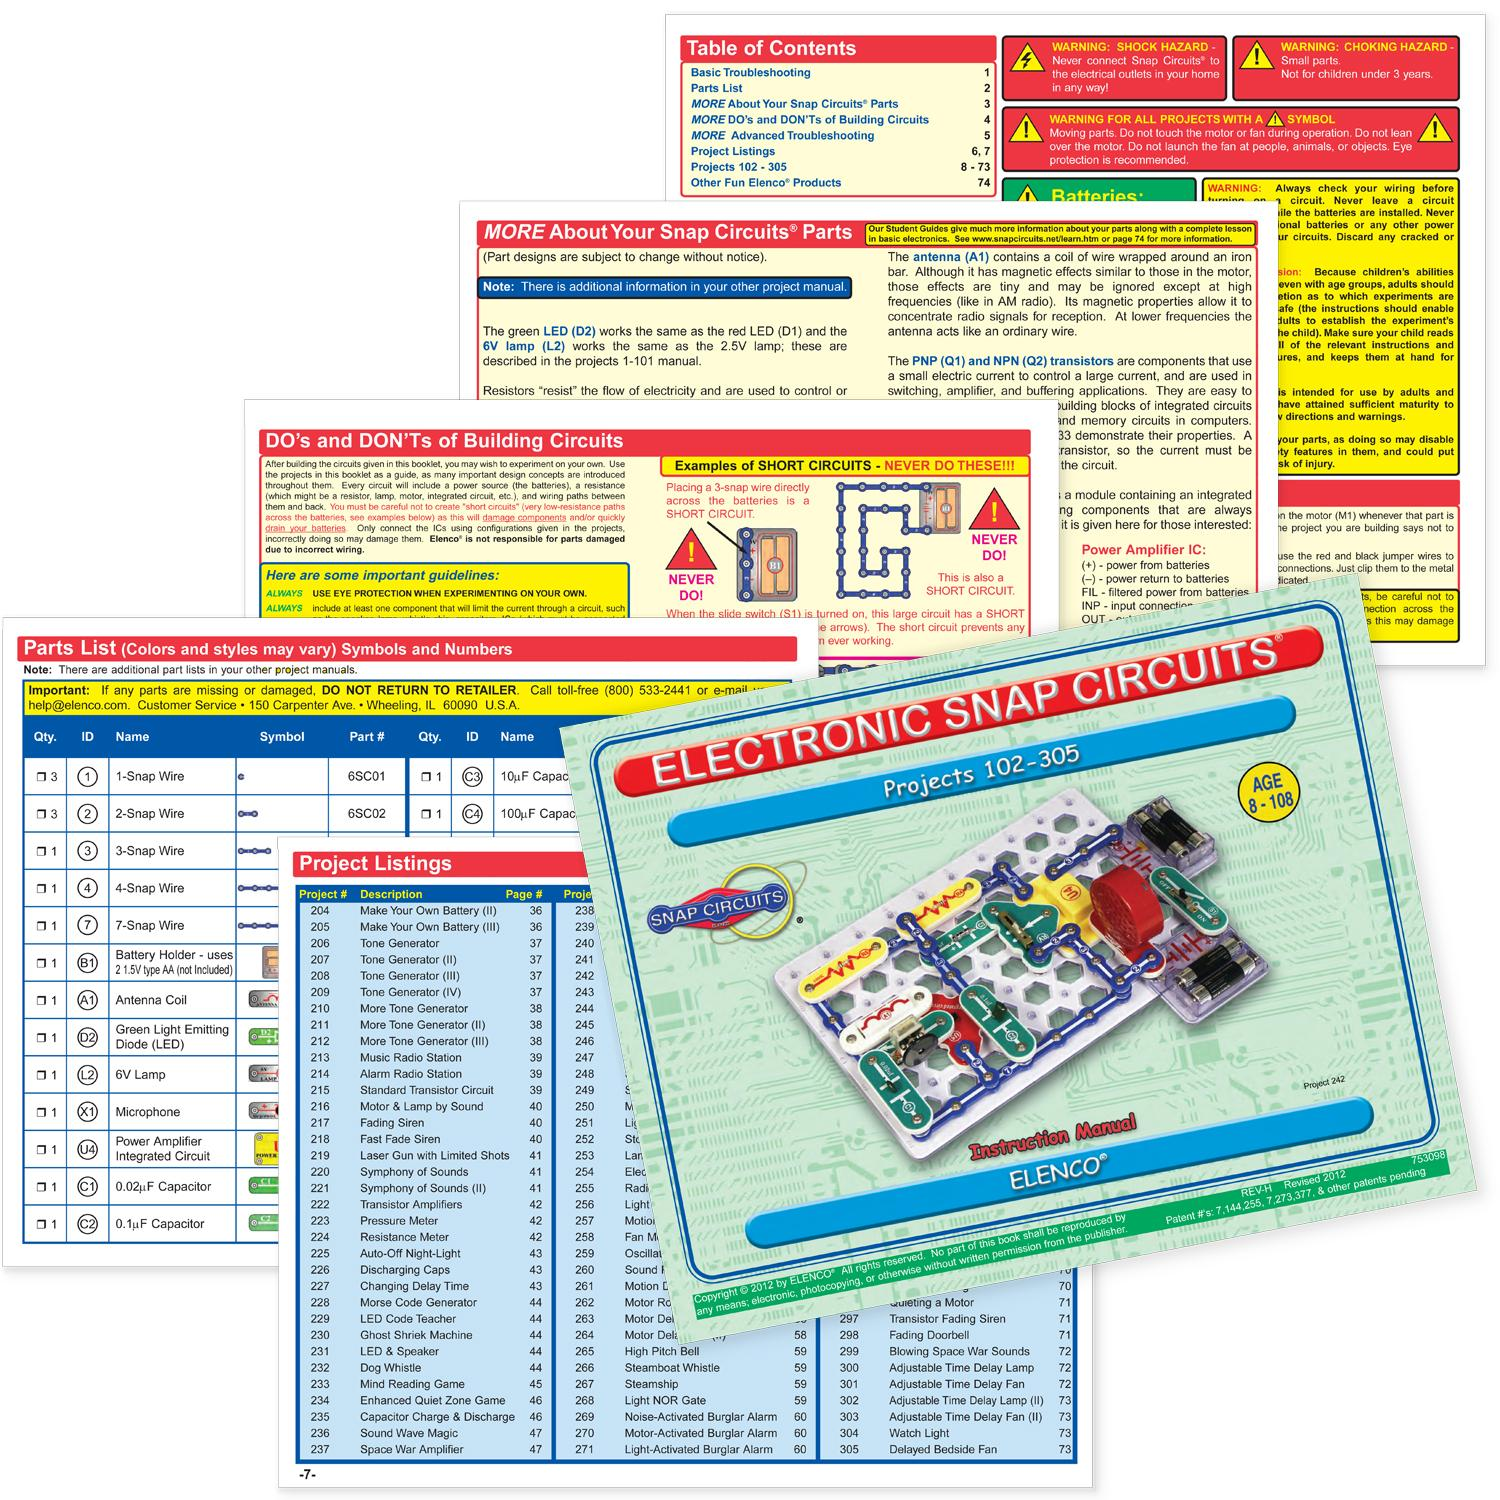 Elenco Electronic Snap Circuits Sc 300 Manual Everything About Extreme 750in1 Kit W Computer Interface Click To Systems Amazon Creations